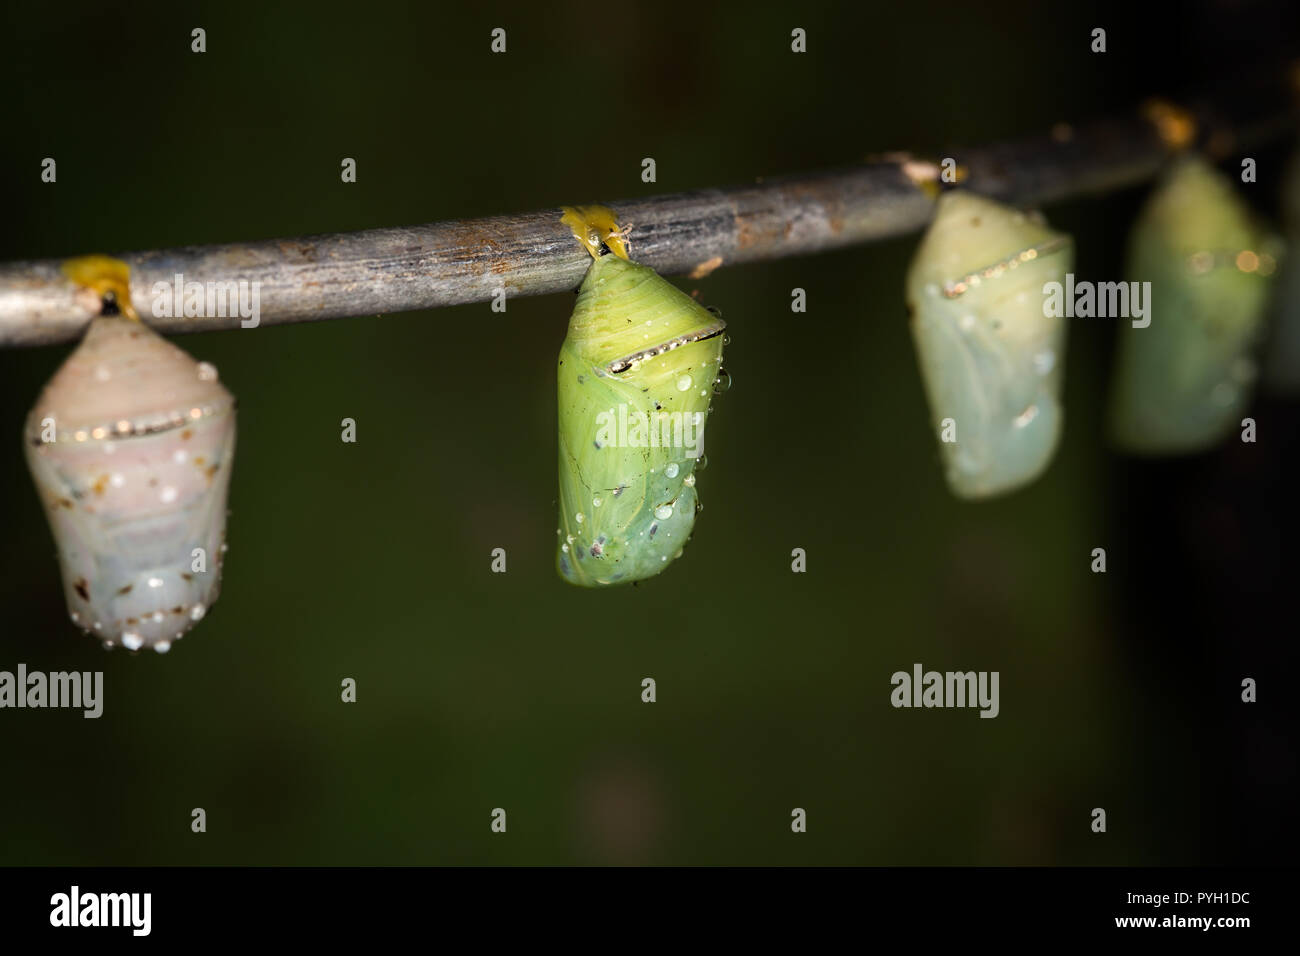 Several butterfly pupas on the brunch, macro, candid light - Stock Image